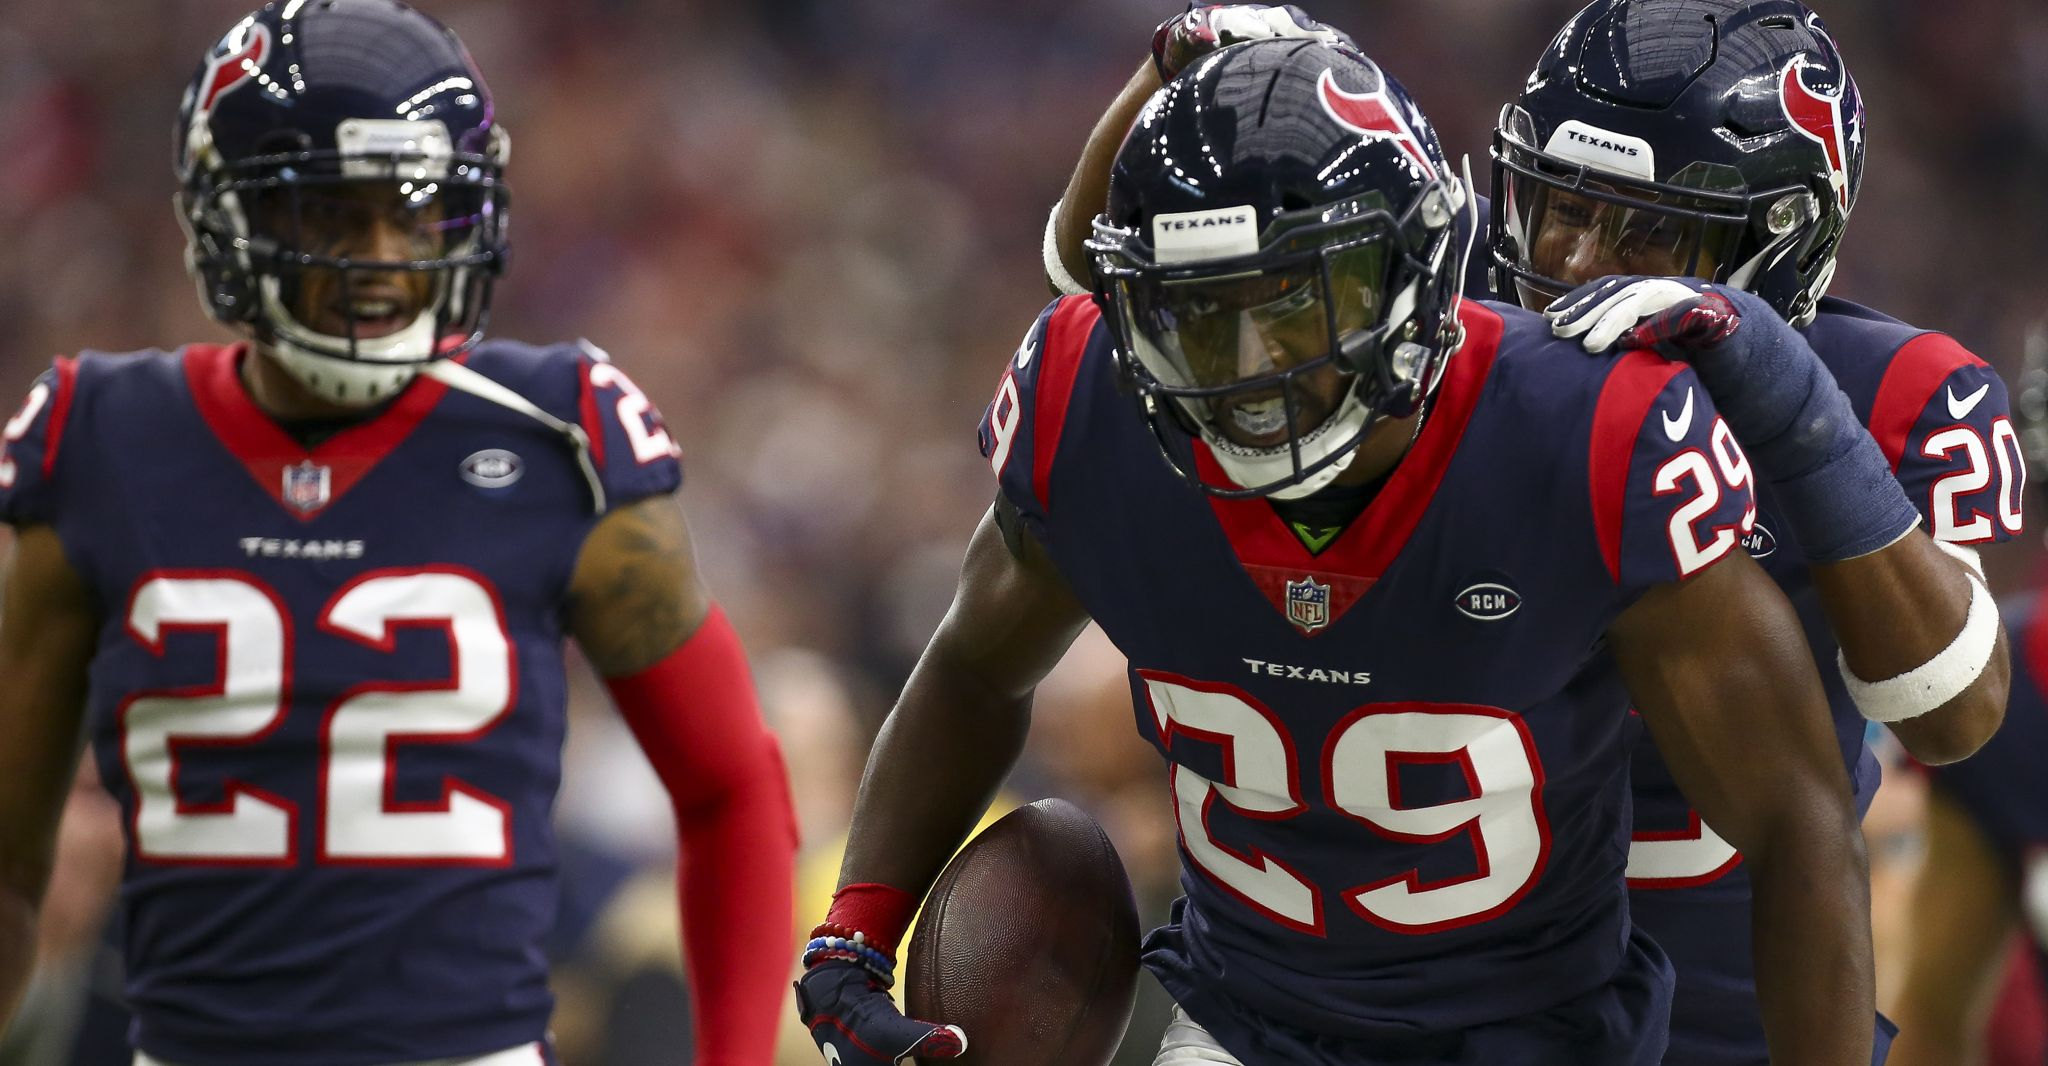 Texans' Andre Hal, a lymphoma survivor, intercepts third pass of season